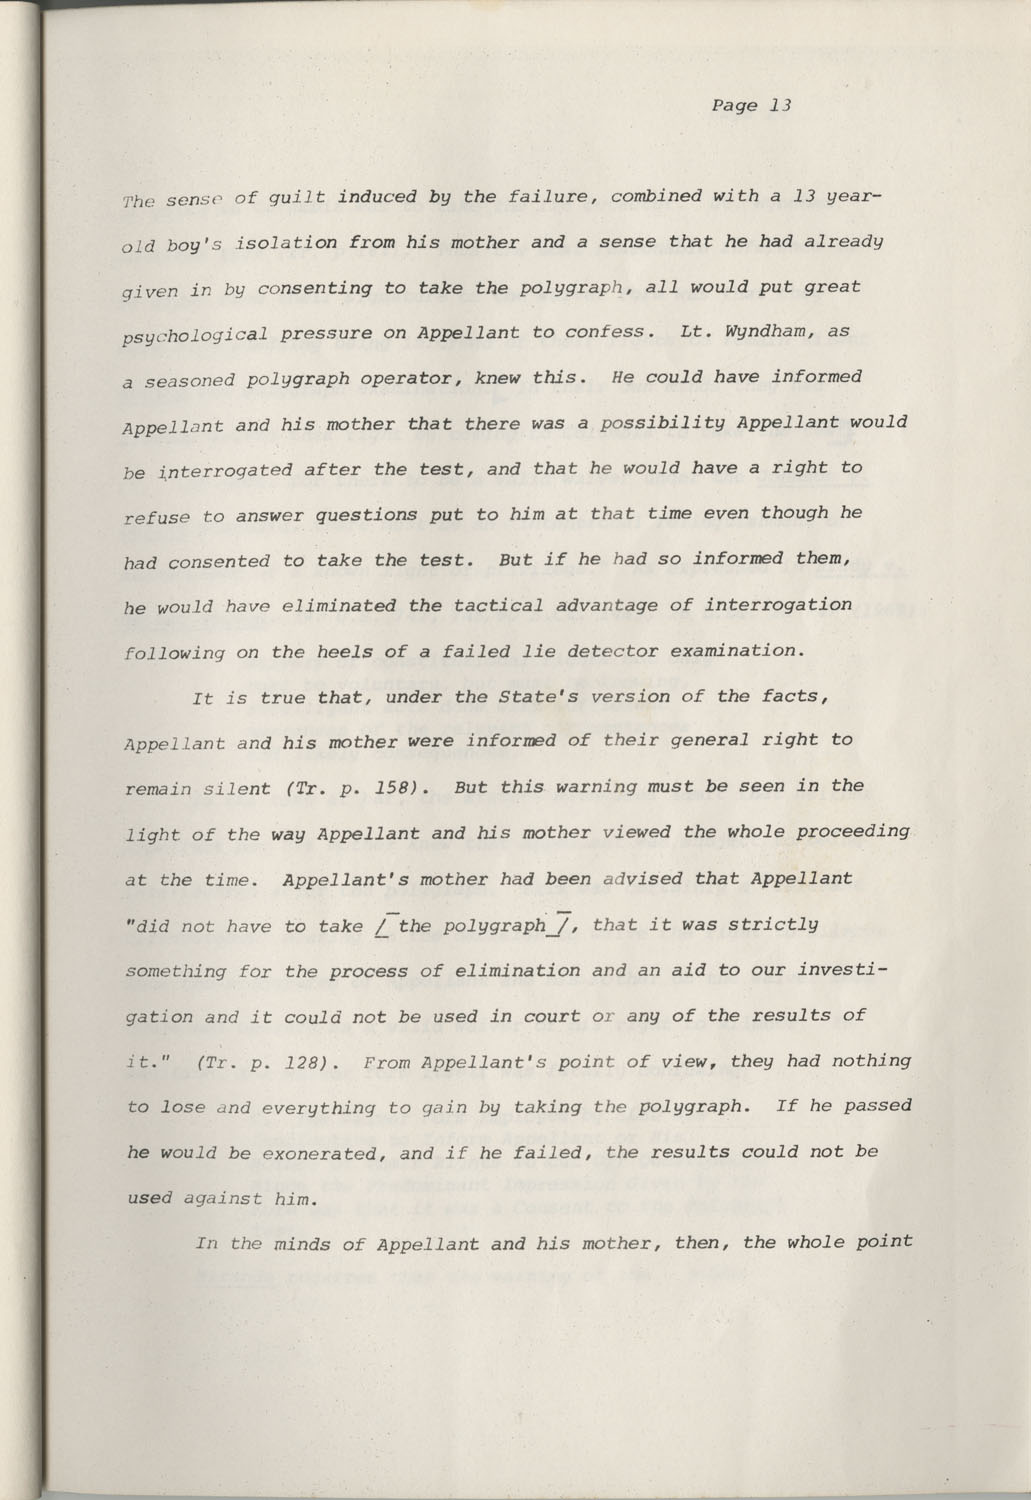 State of South Carolina vs. Robert Lee Smith, Brief of Appellant, Page 13